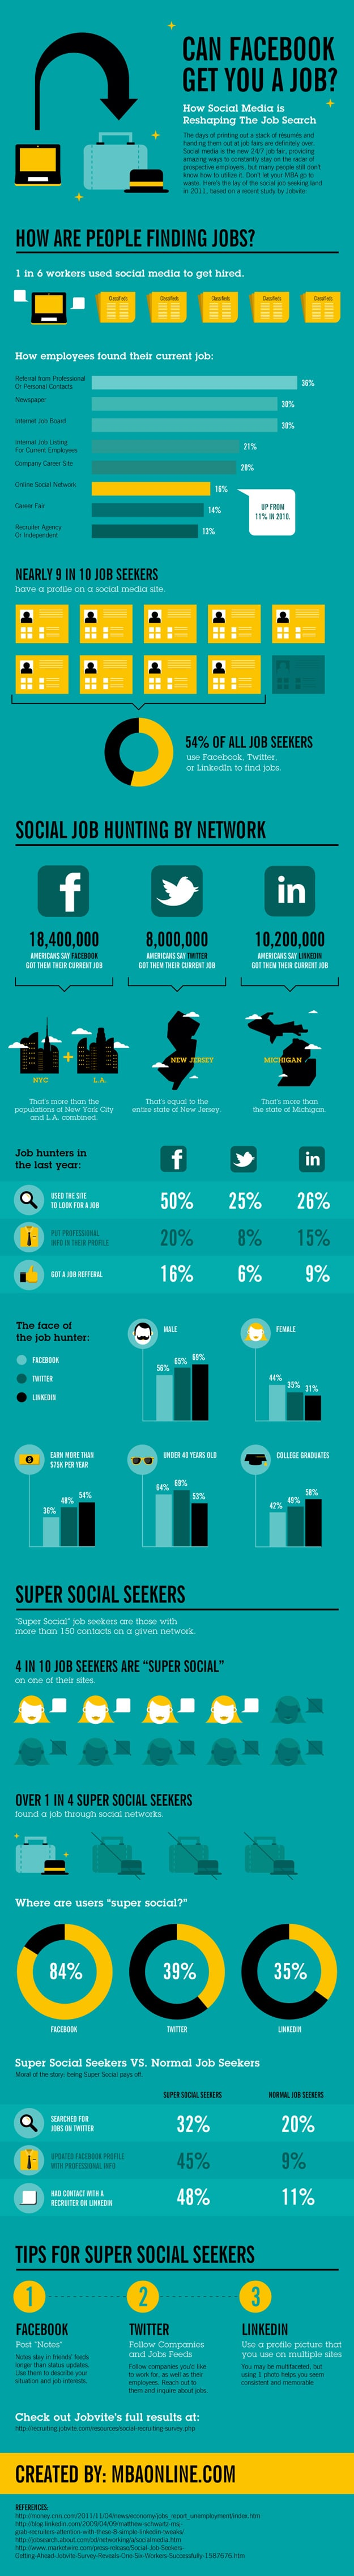 Social Media Job Hunting: Reshaping Our Future [Infographic]